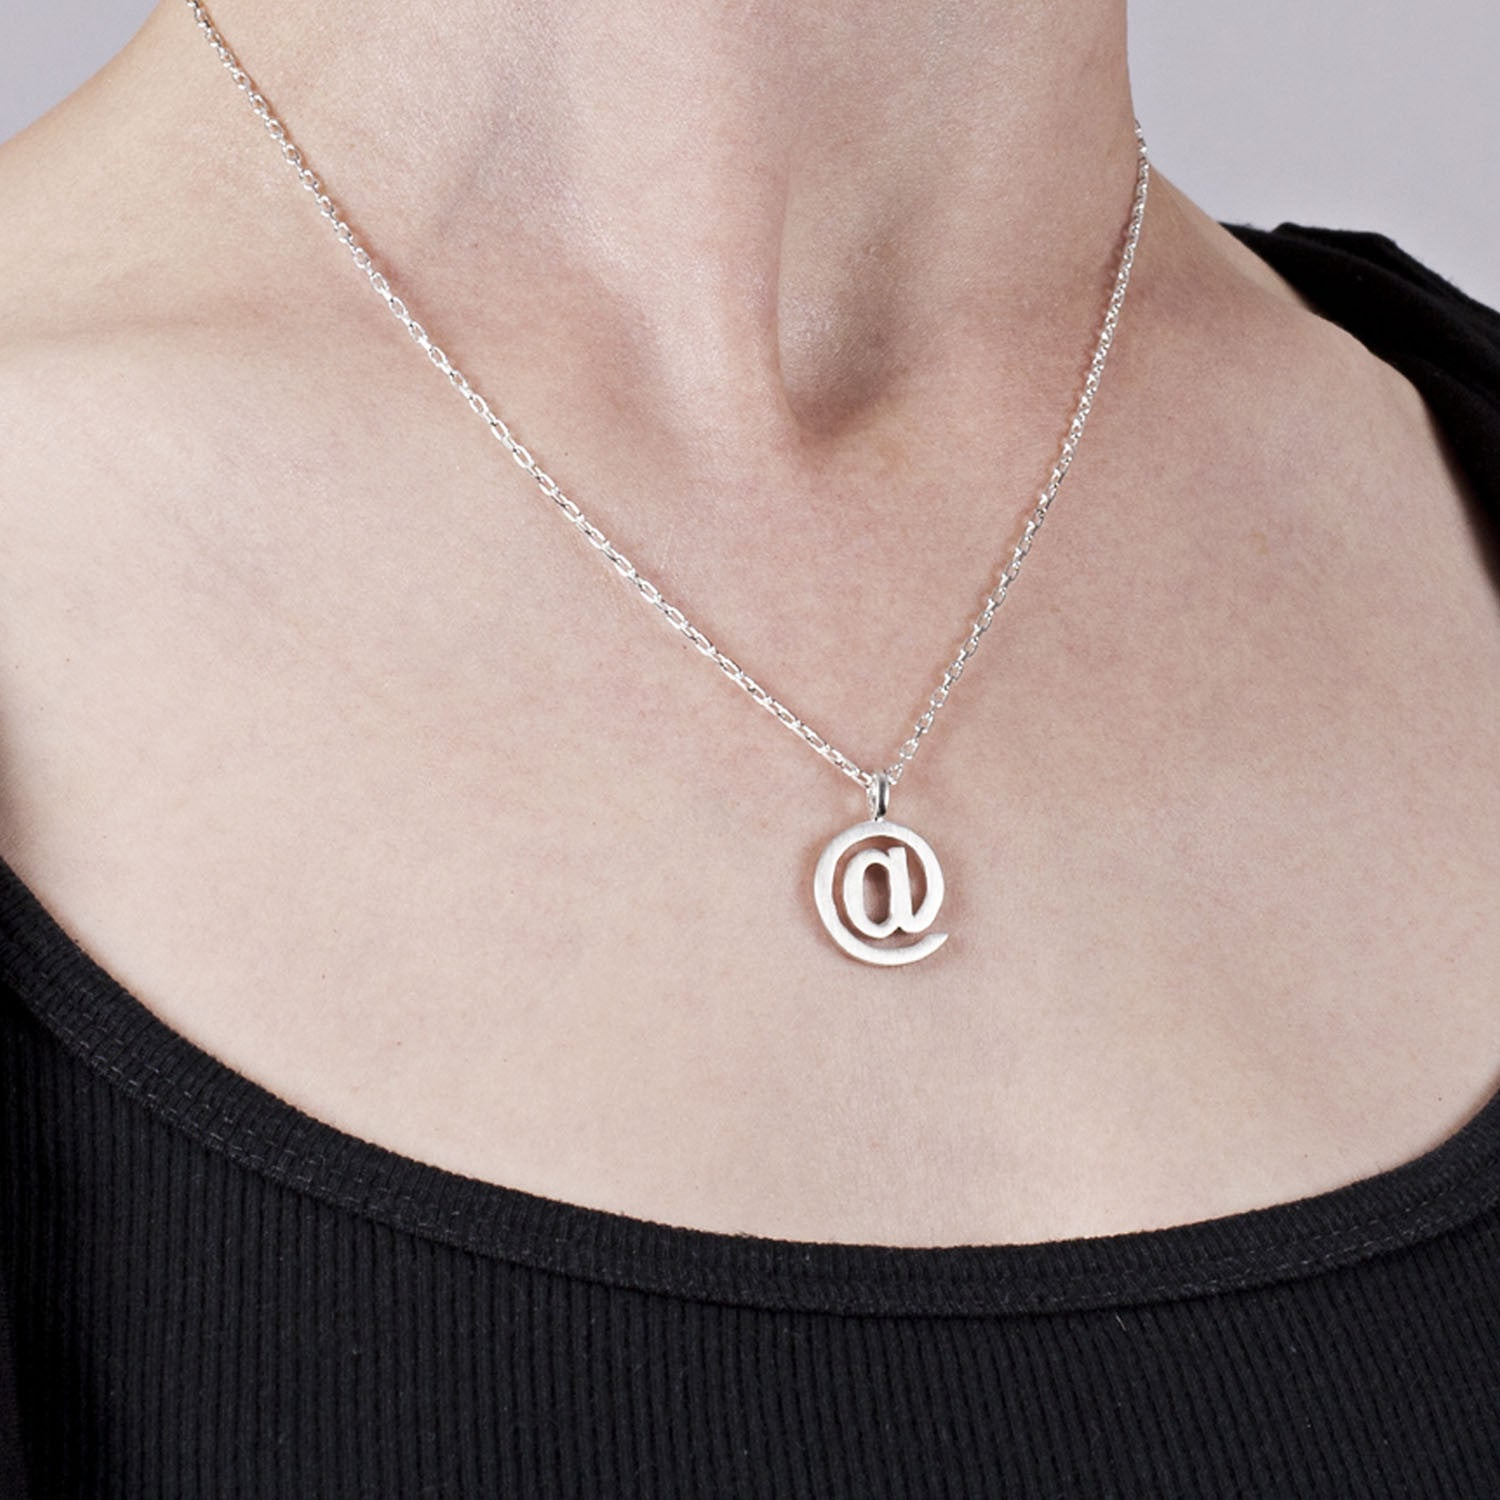 Edge Only At Symbol Pendant in Sterling Silver